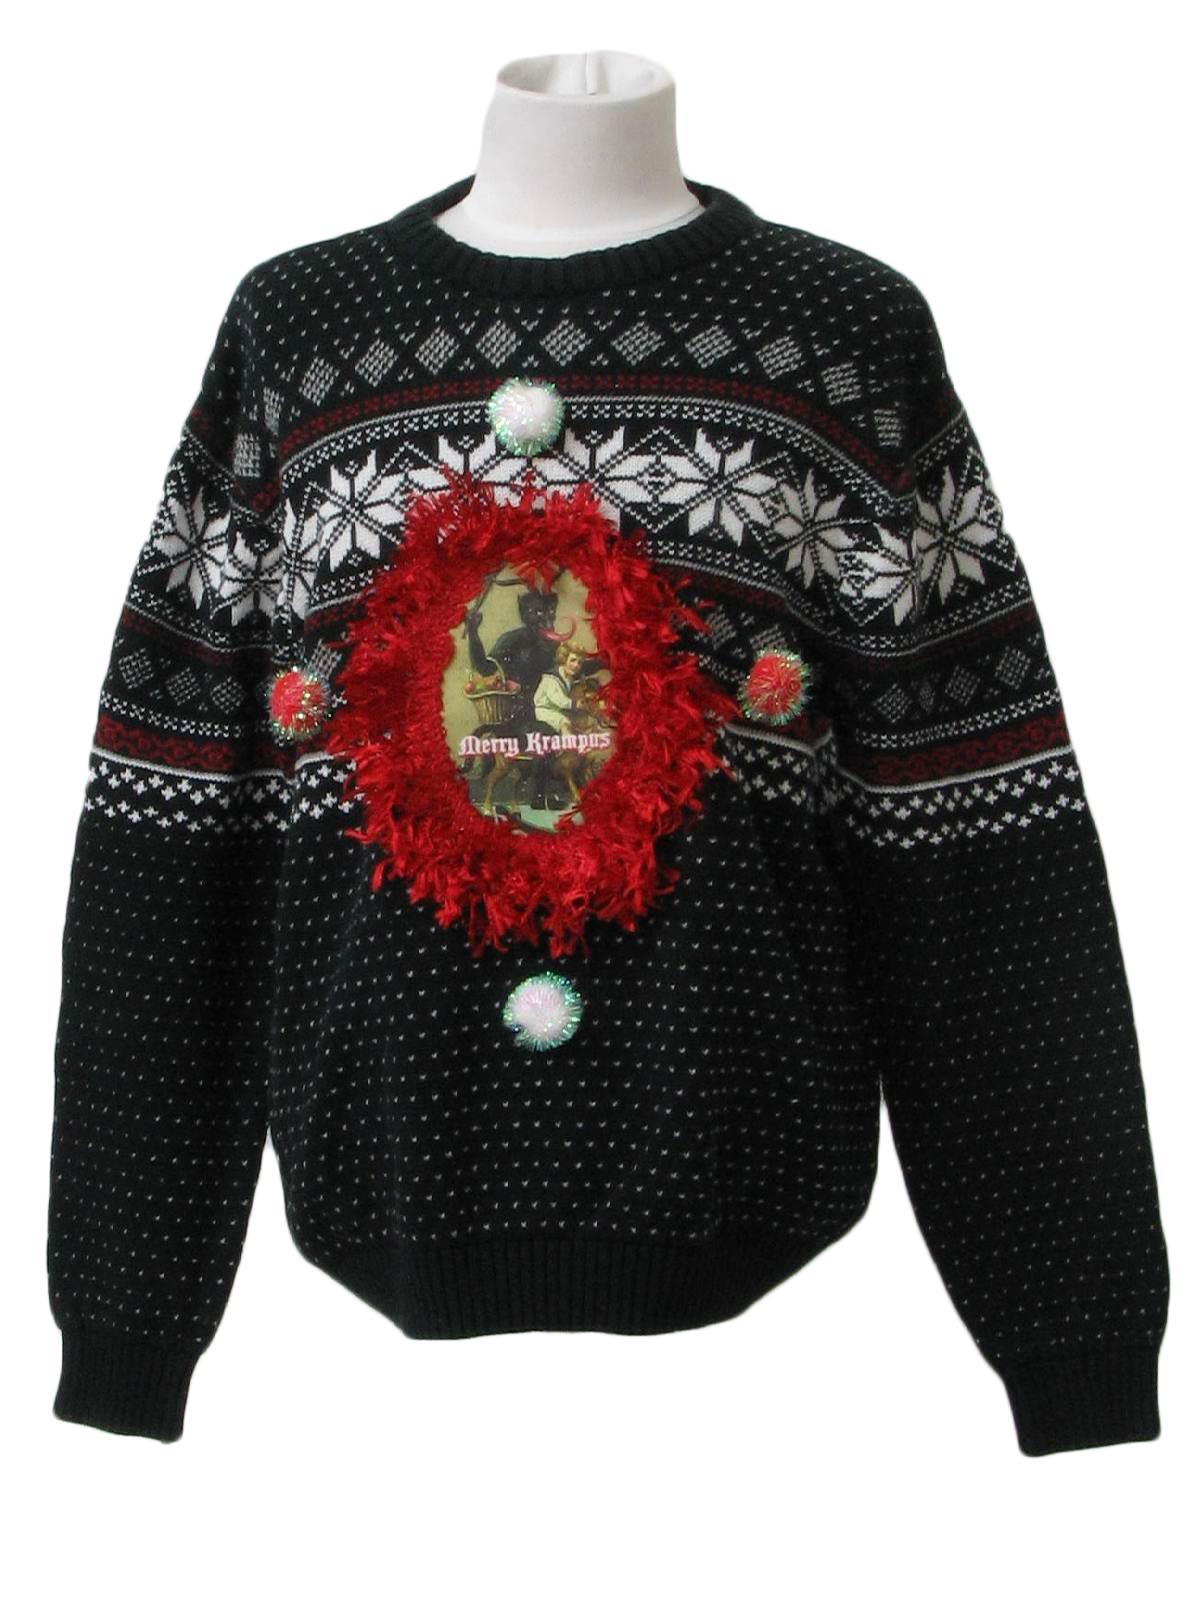 childrens ugly krampus christmas sweater pb basics scare the little kiddies with your very own krampus sweater in european legend krampus travels with - Childrens Ugly Christmas Sweaters